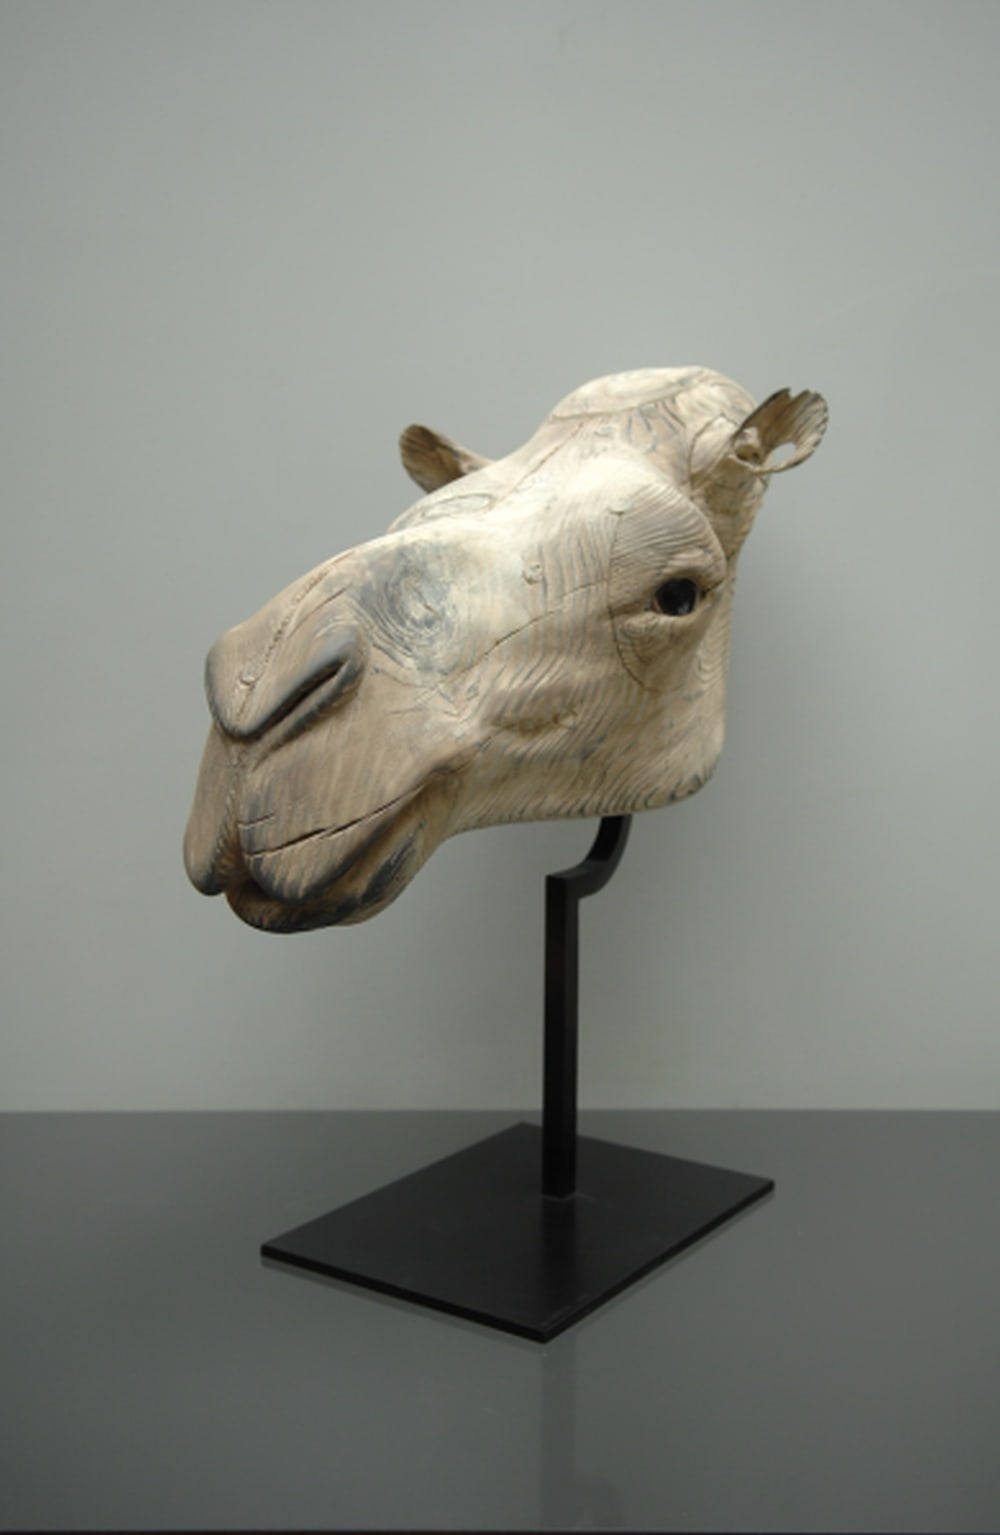 Quentin Garel, Mask of the Camel, 2013